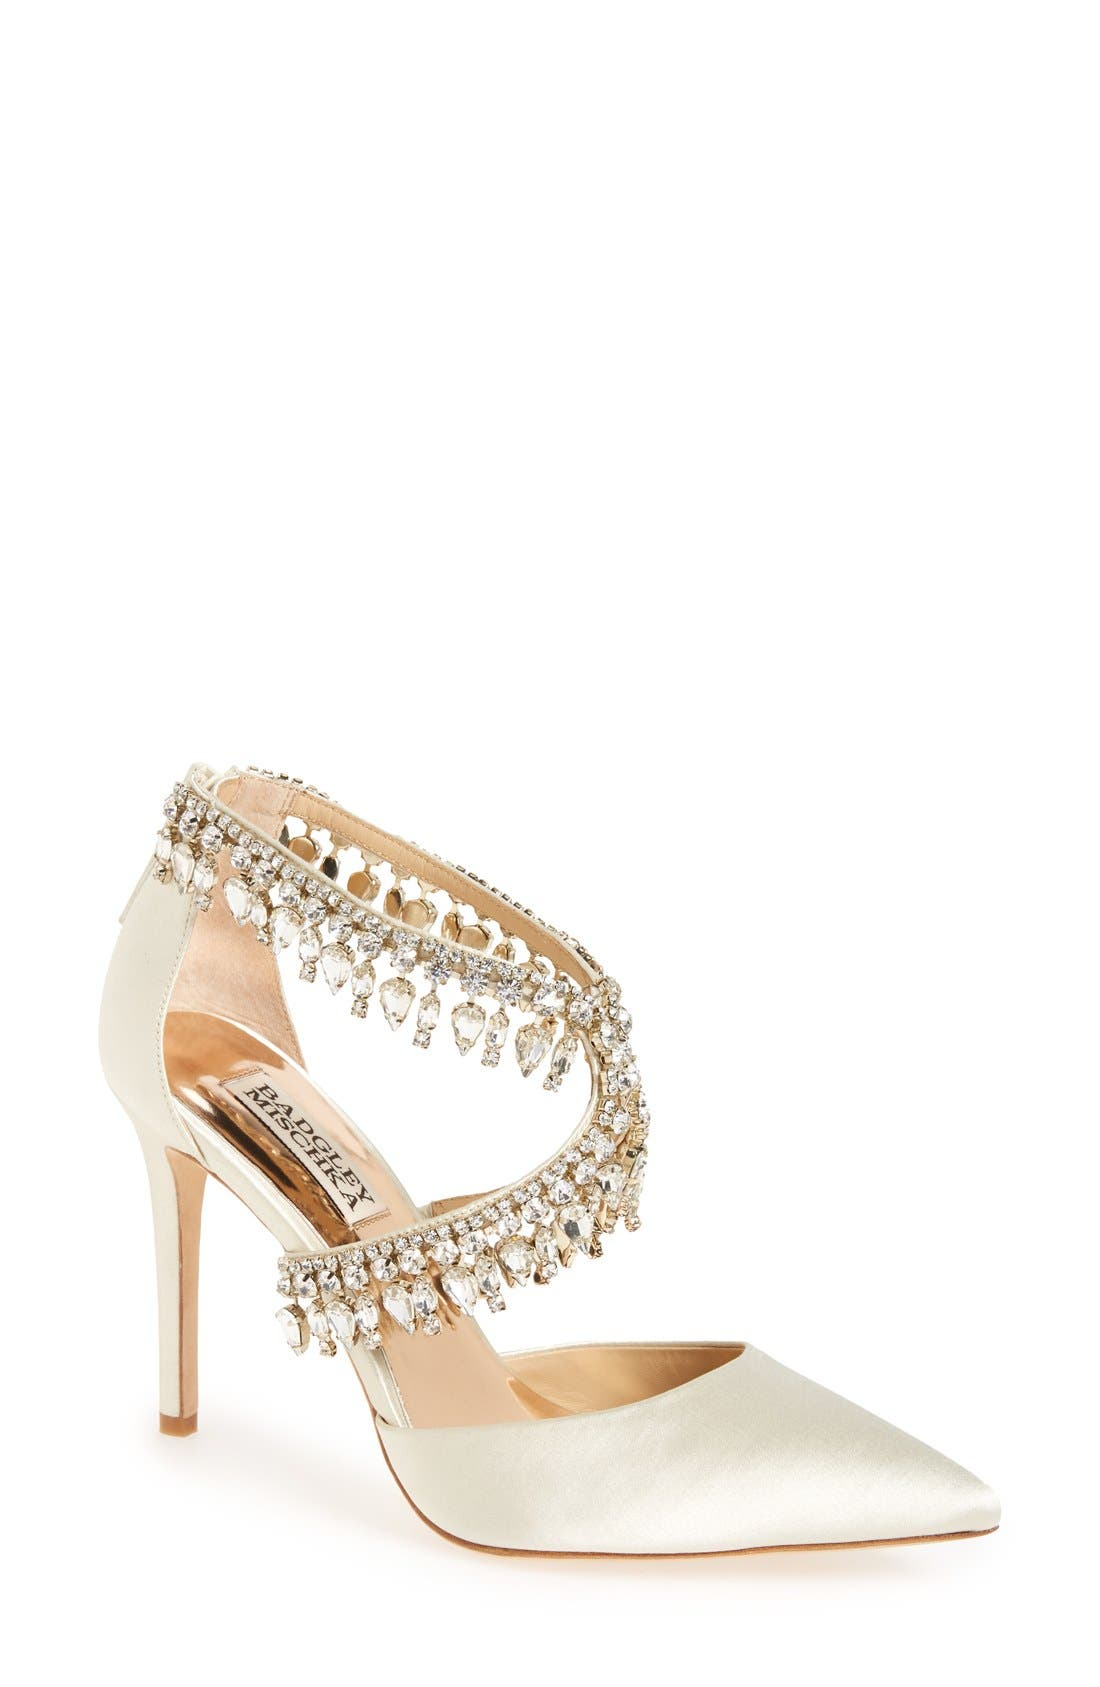 Main Image - Badgley Mischka 'Glamorous' Crystal-Embellished Pointy Toe Pump (Women)